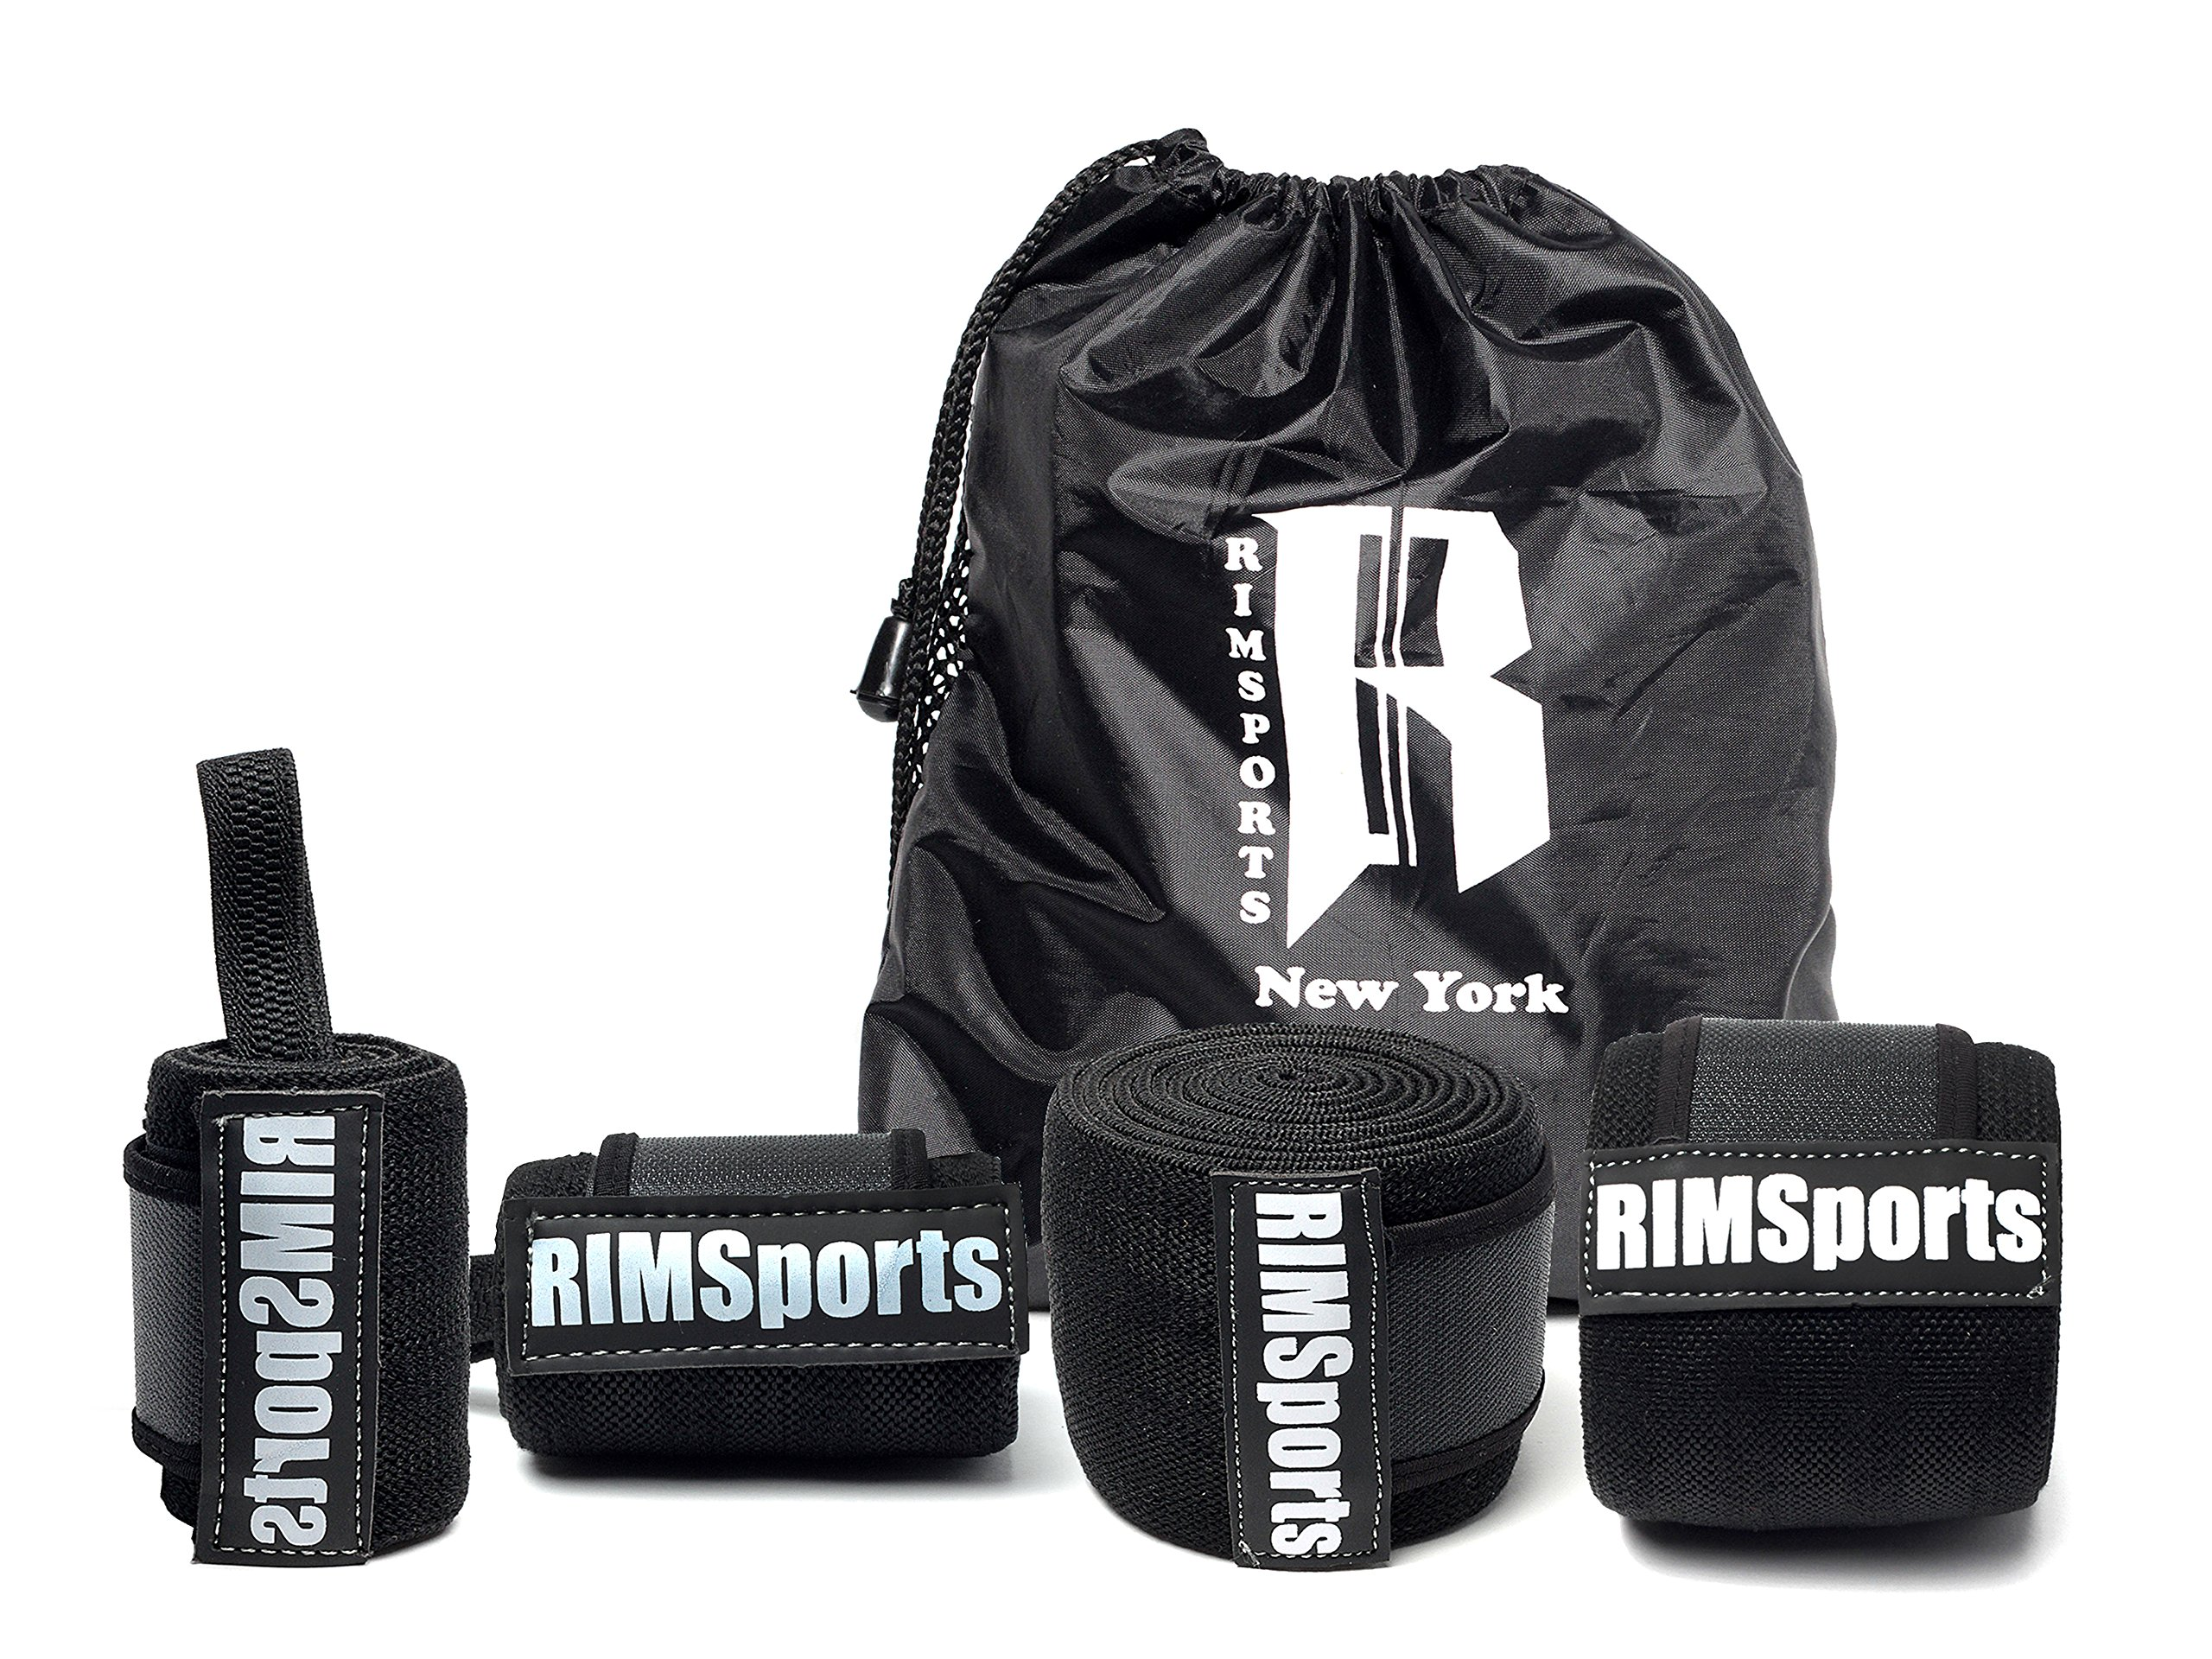 RIMSports Wrist Wraps - Knee Wraps Combo Best Knee Support for Squats - Ideal Wrist Straps for Weightlifting - Preferred Weightlifting Knee Wraps 80''& Wrist Wraps 18'' (Pair) Black with Gray